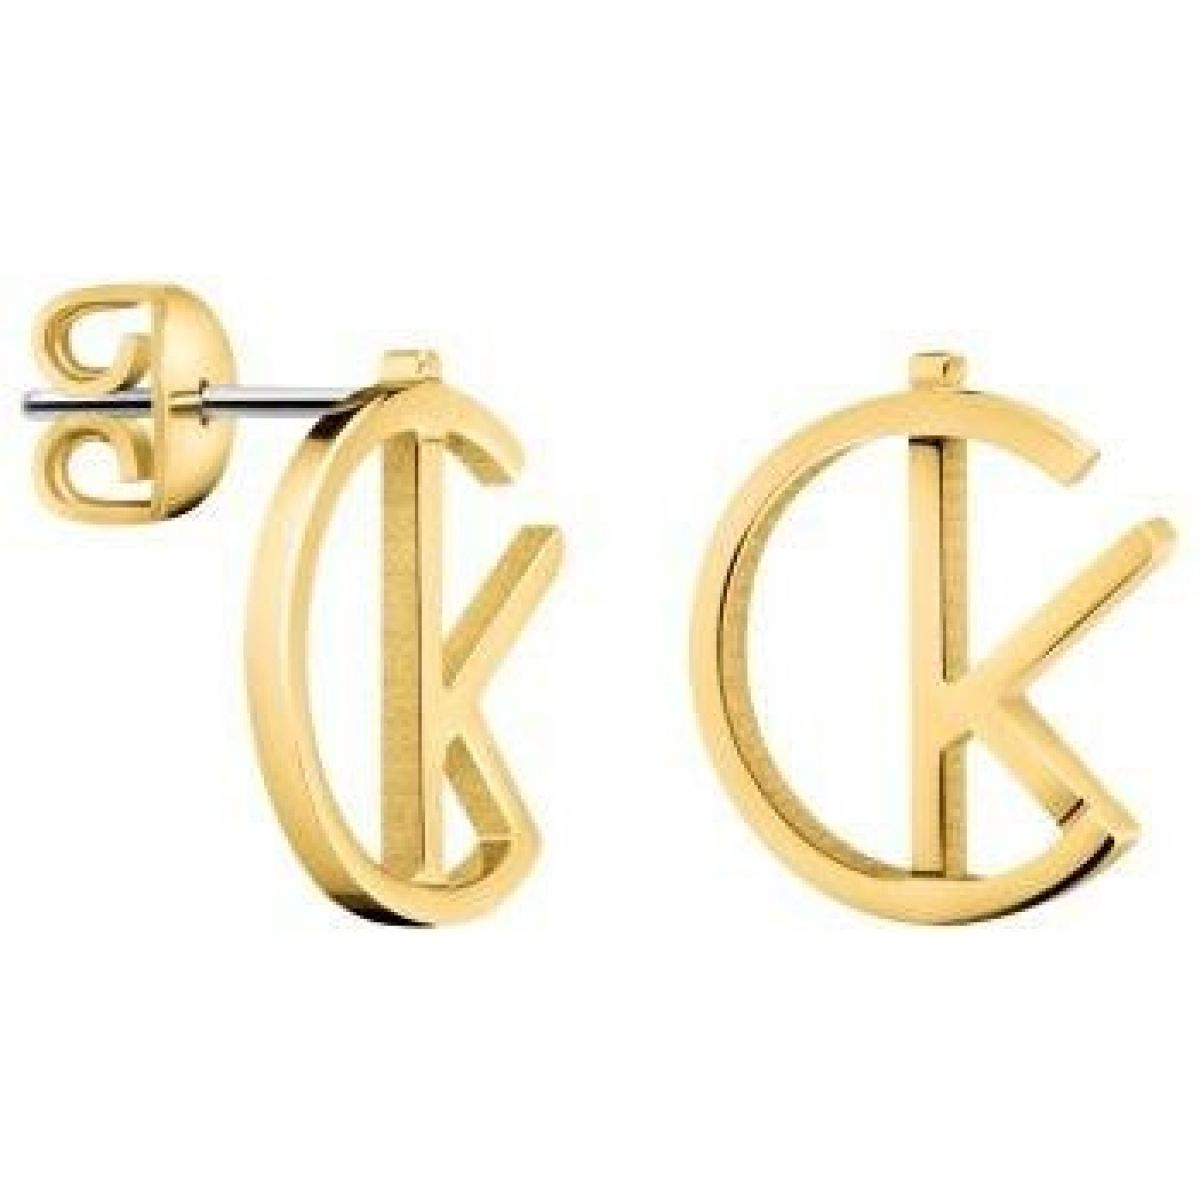 Calvin klein gold earrings